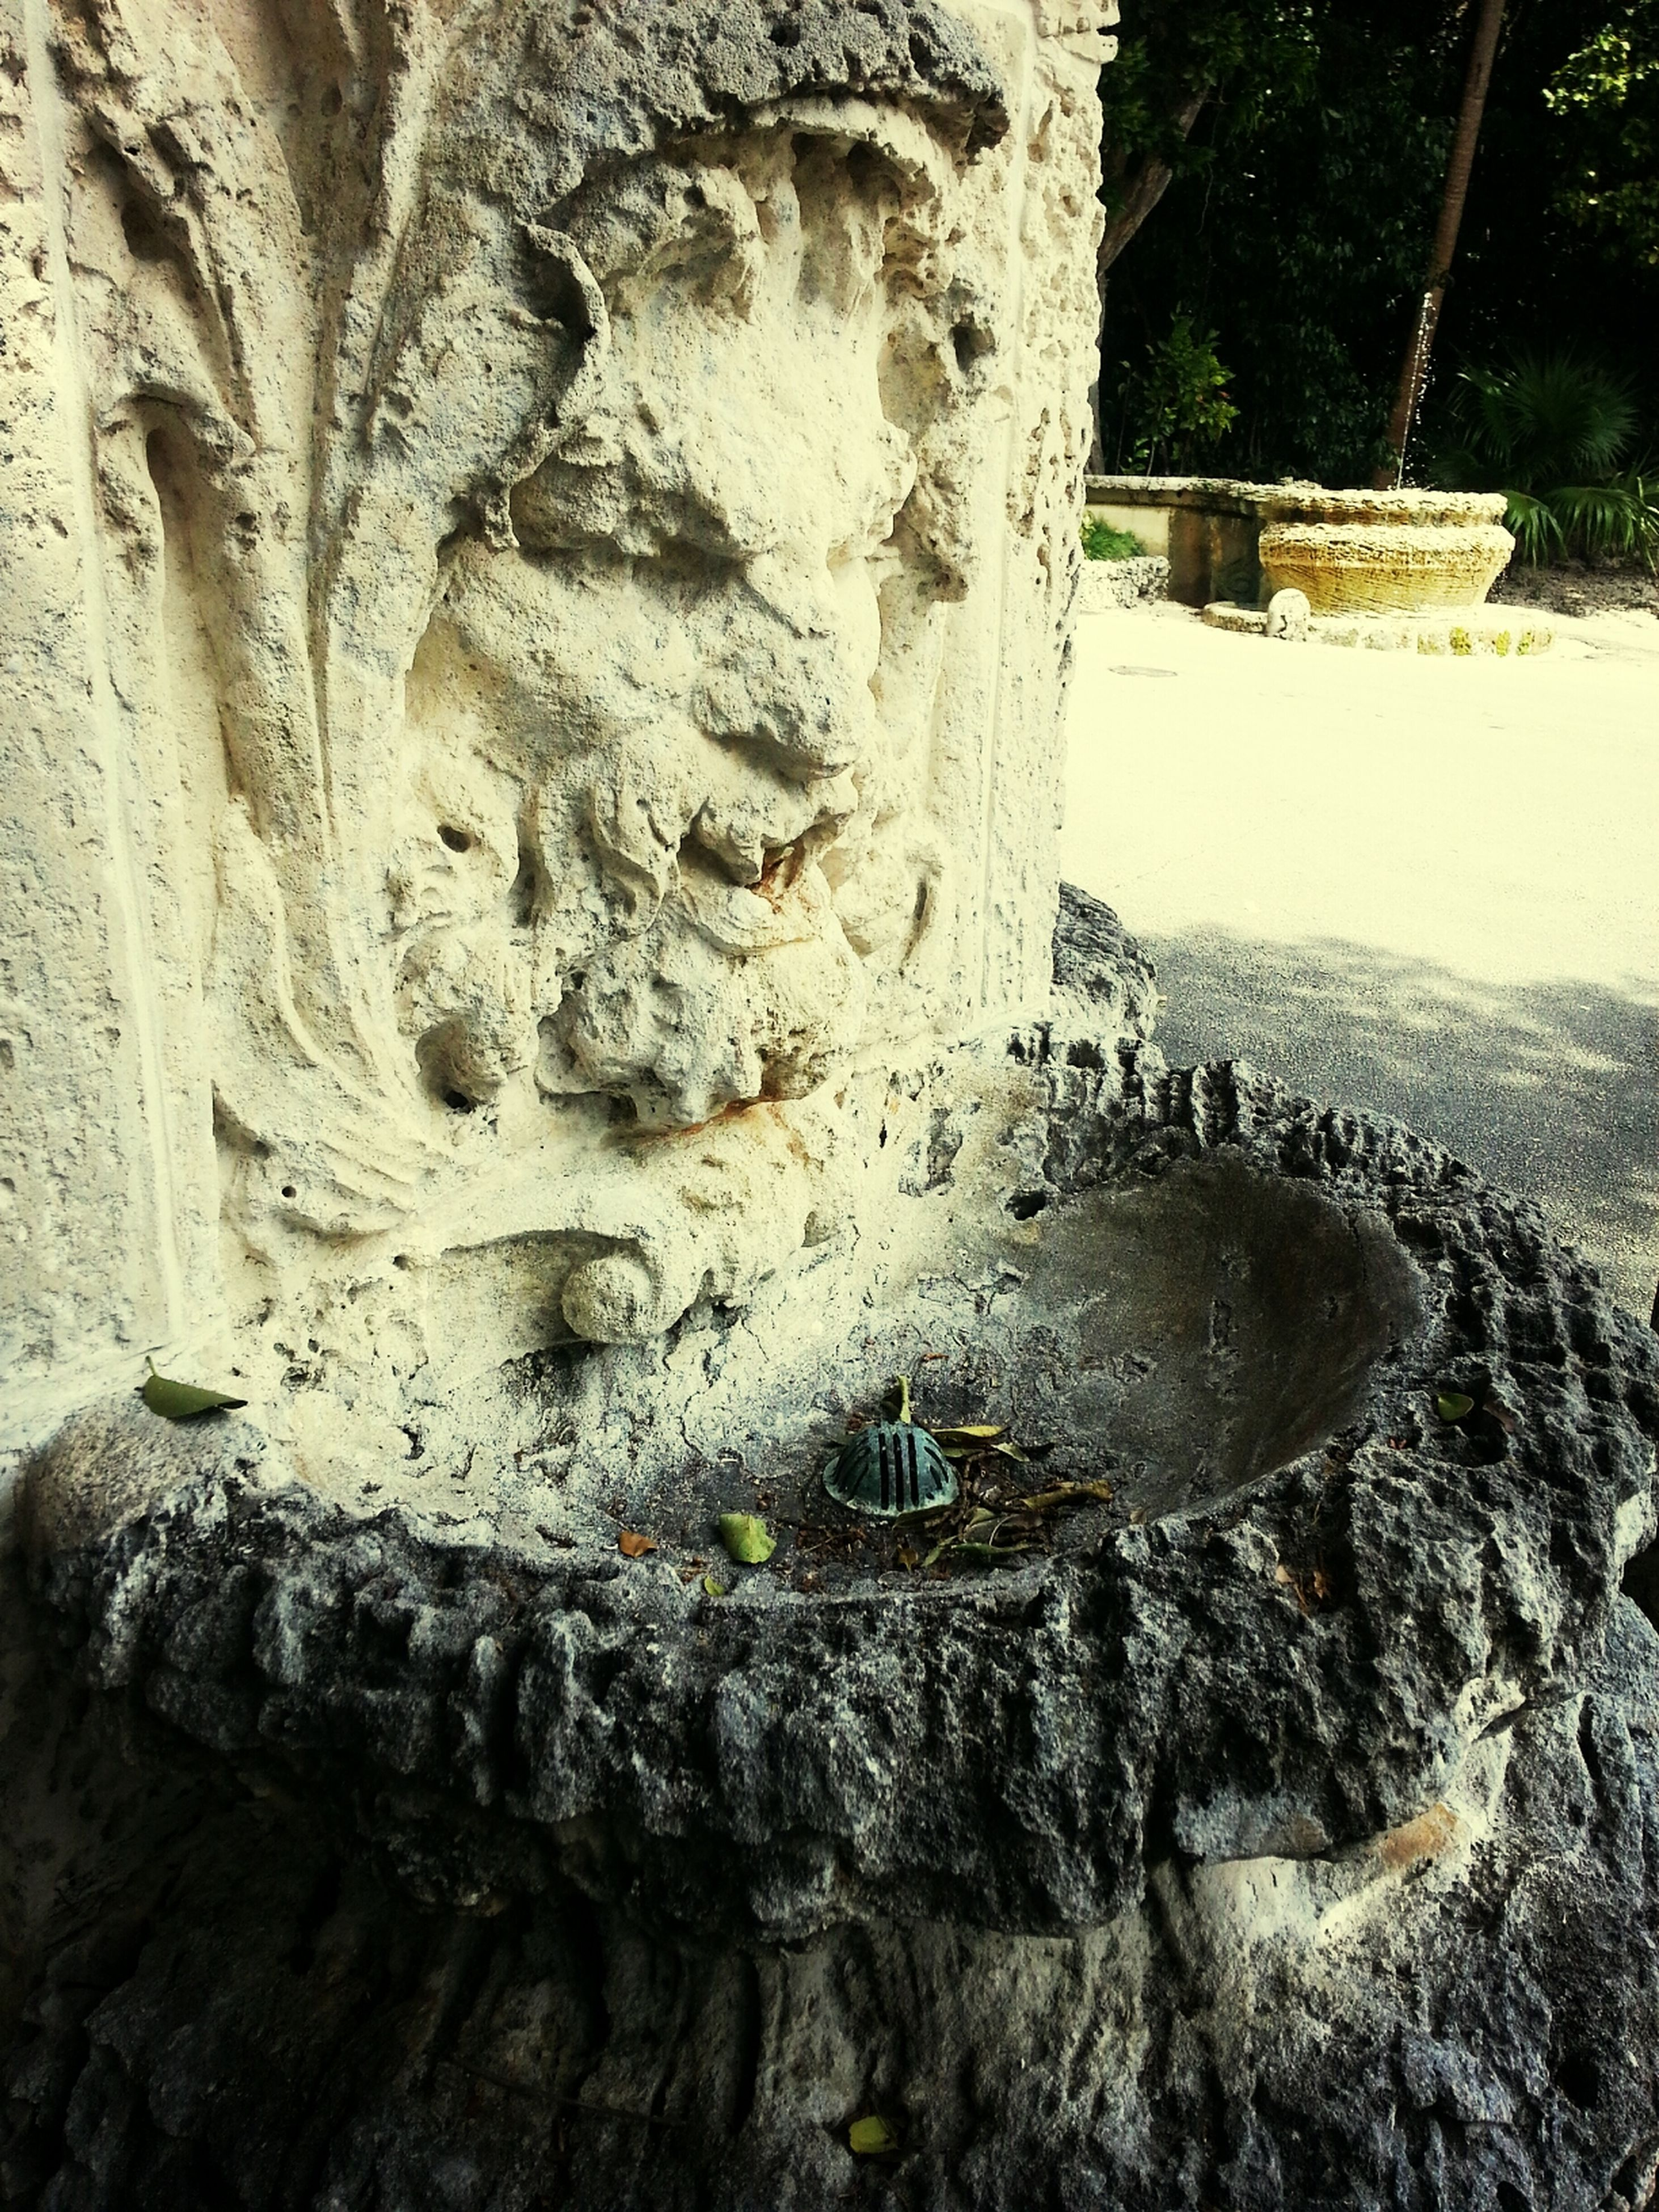 art and craft, art, human representation, creativity, sculpture, statue, old, carving - craft product, weathered, stone material, built structure, close-up, history, the past, architecture, tree, cemetery, religion, wall - building feature